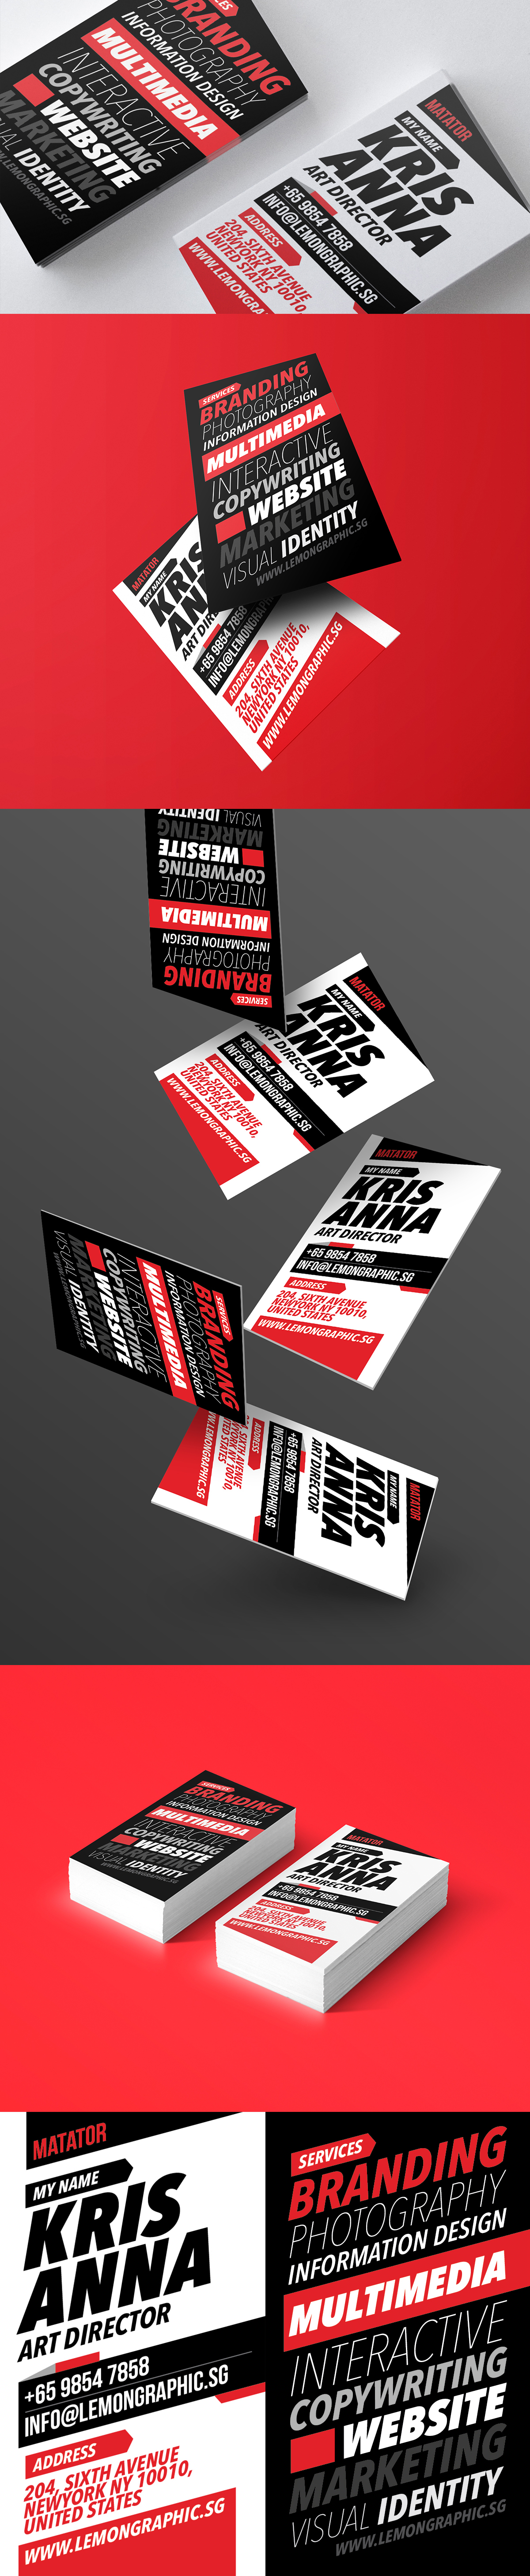 Matator red typography business card design on Behance